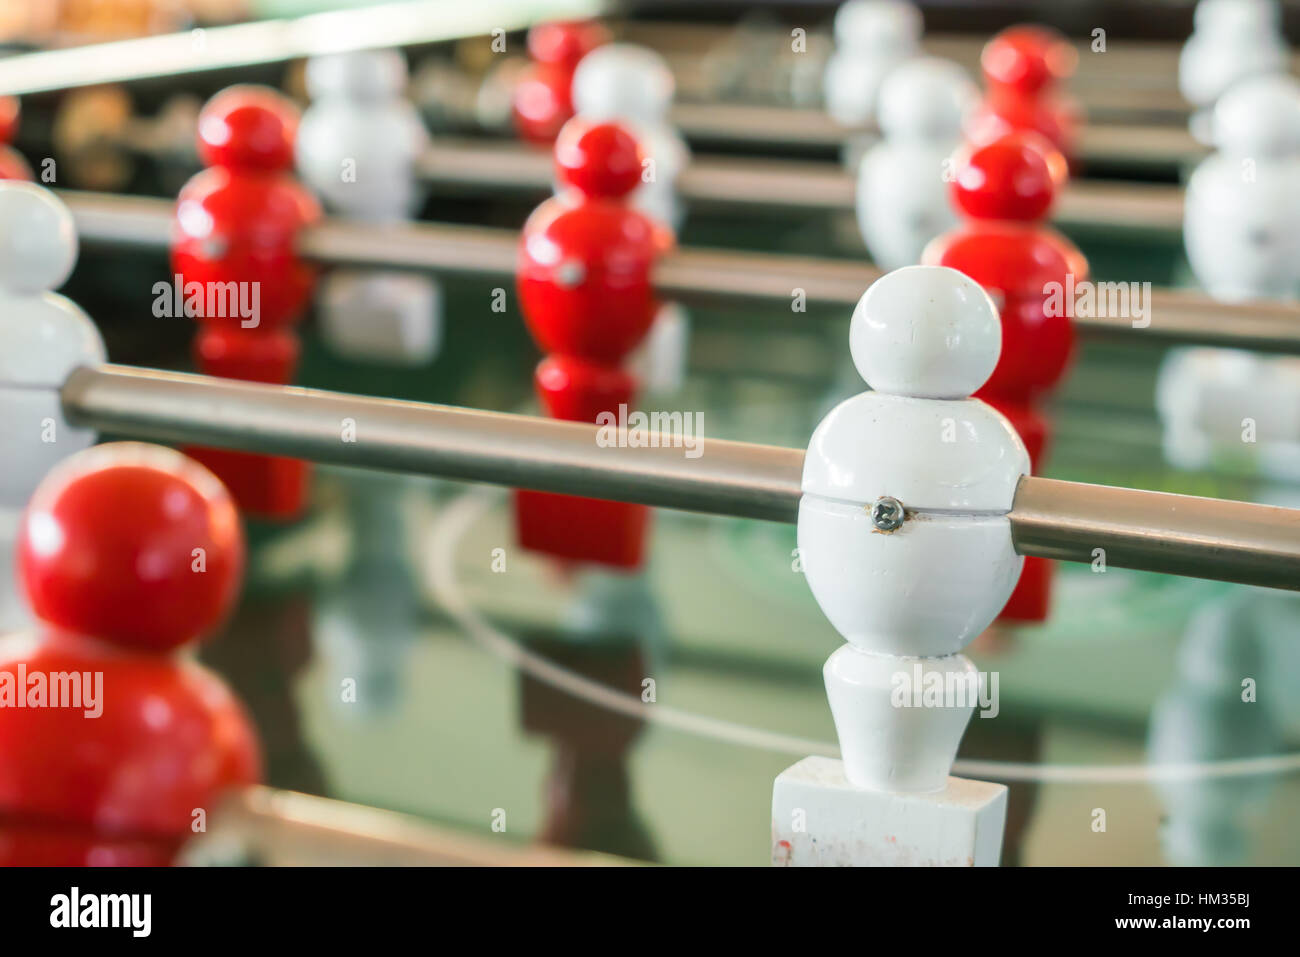 Football table game with red and white player - Stock Image